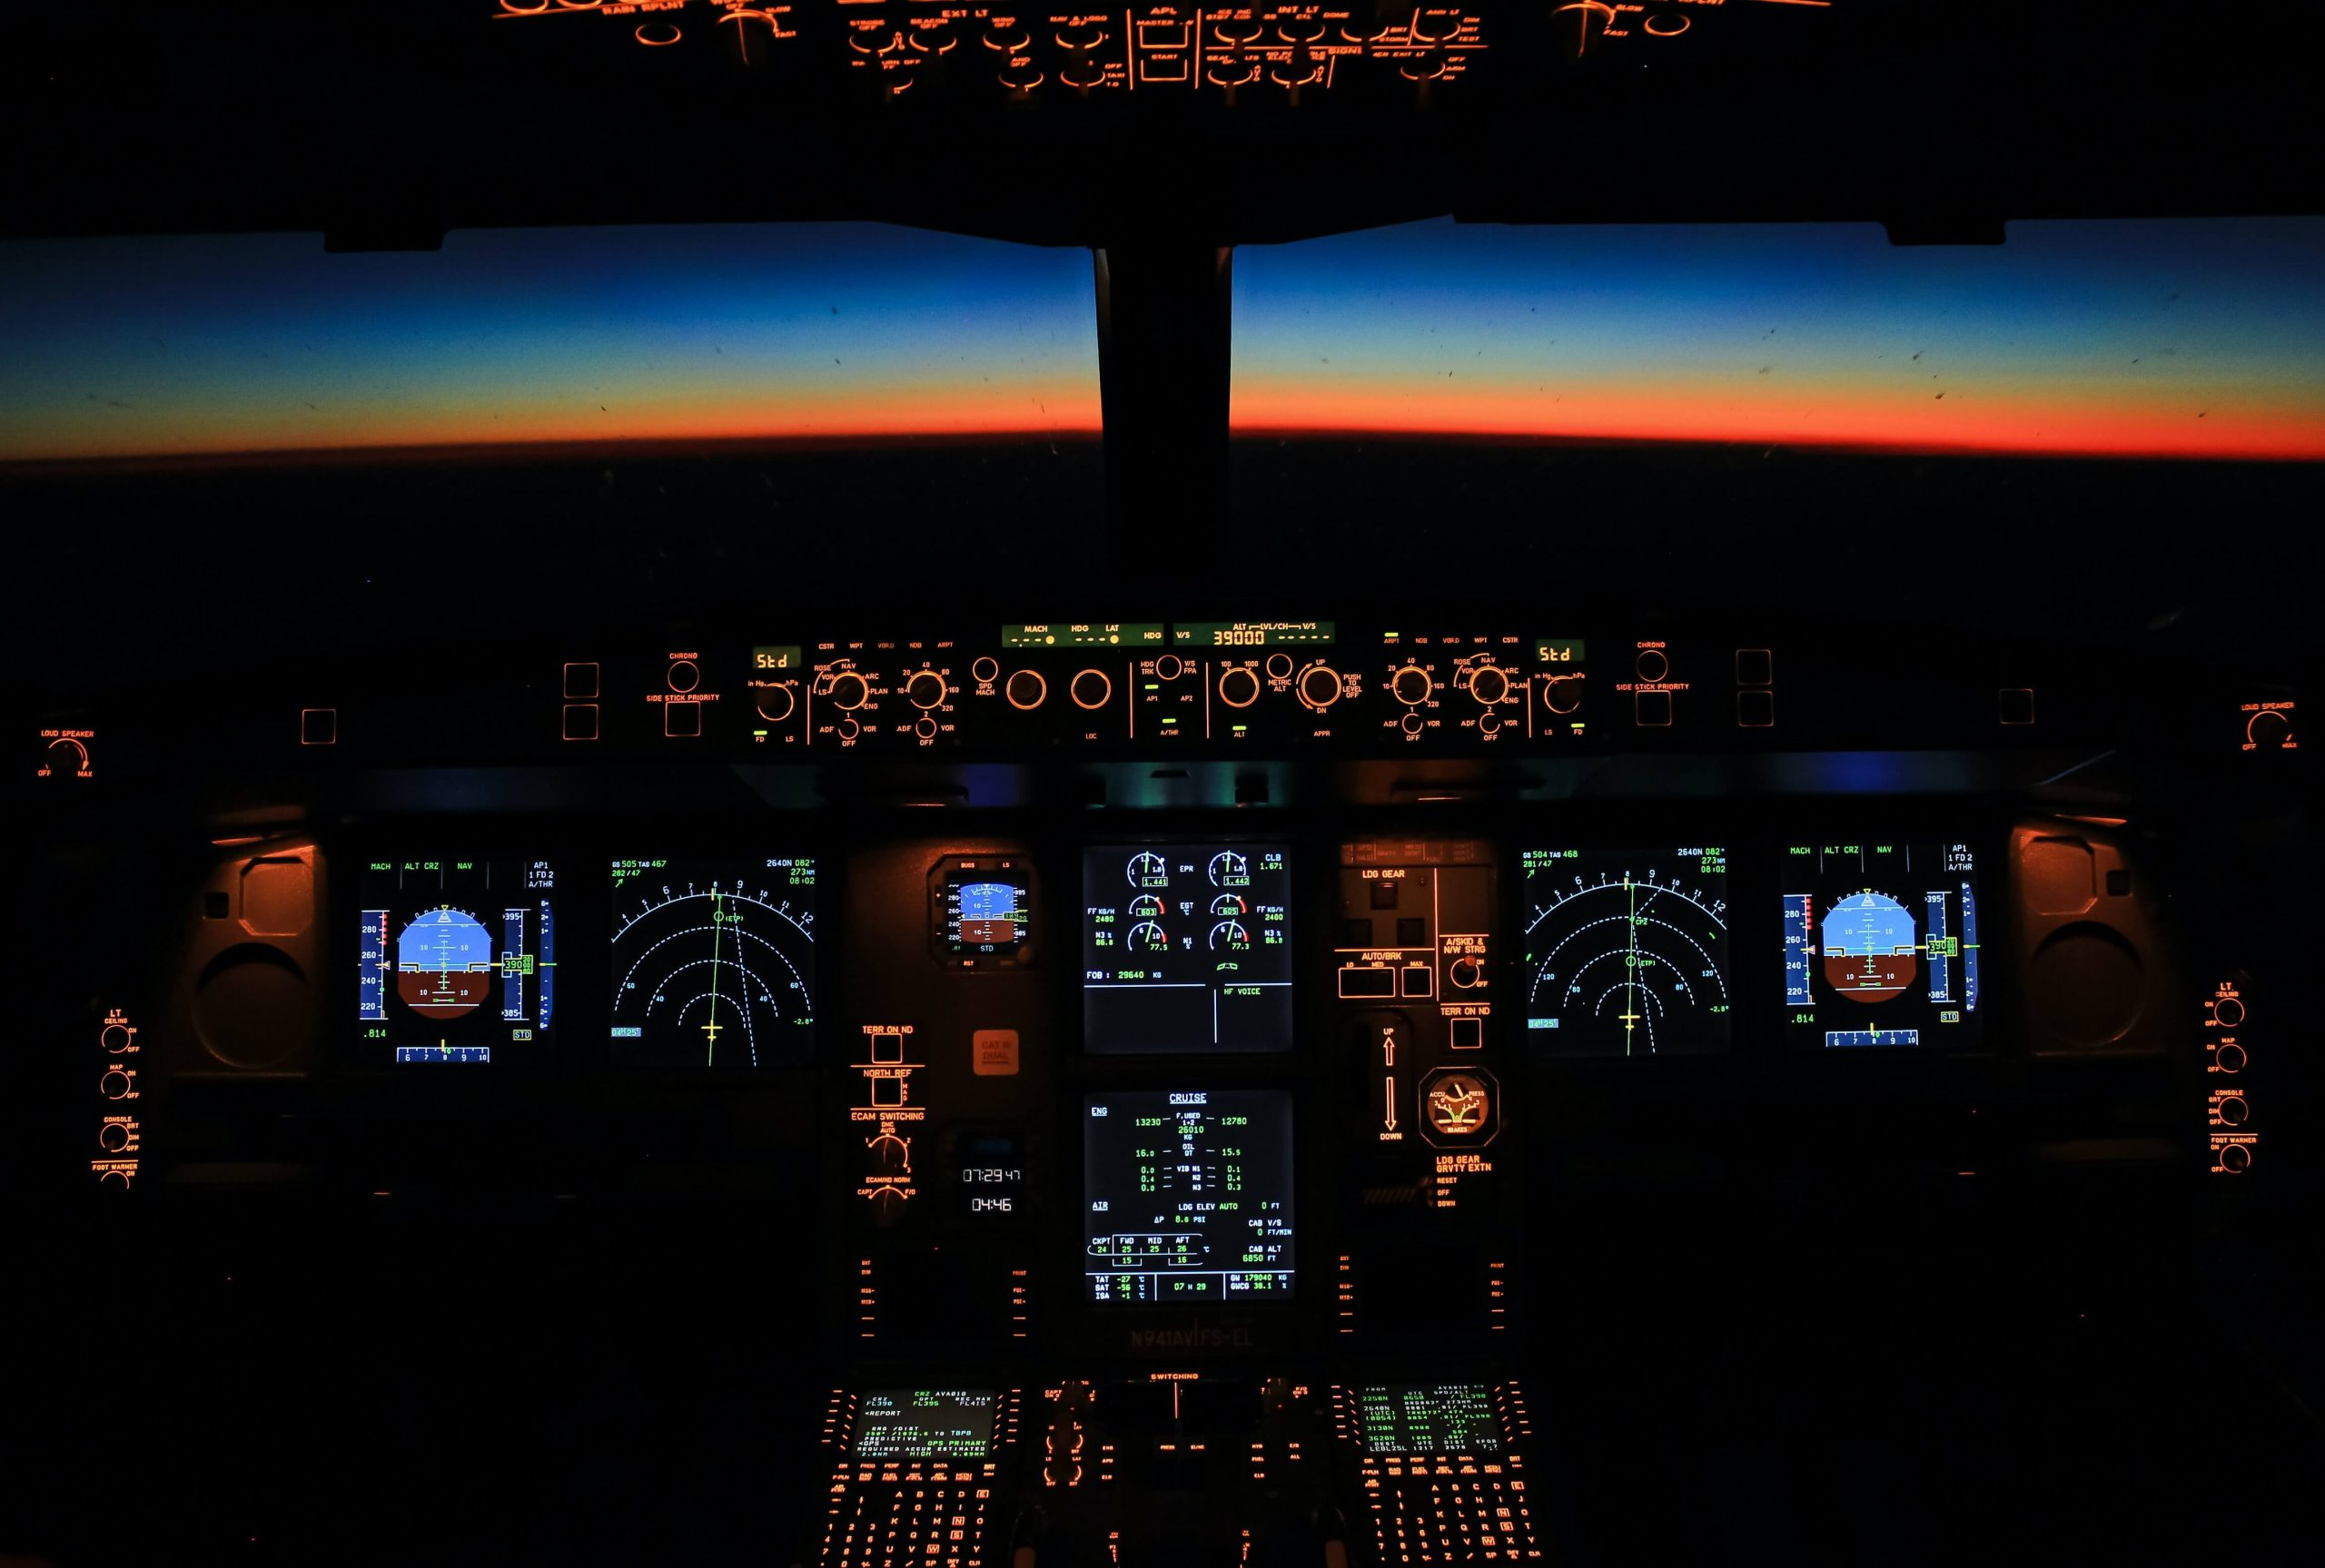 night-vfr-gece-ucusu